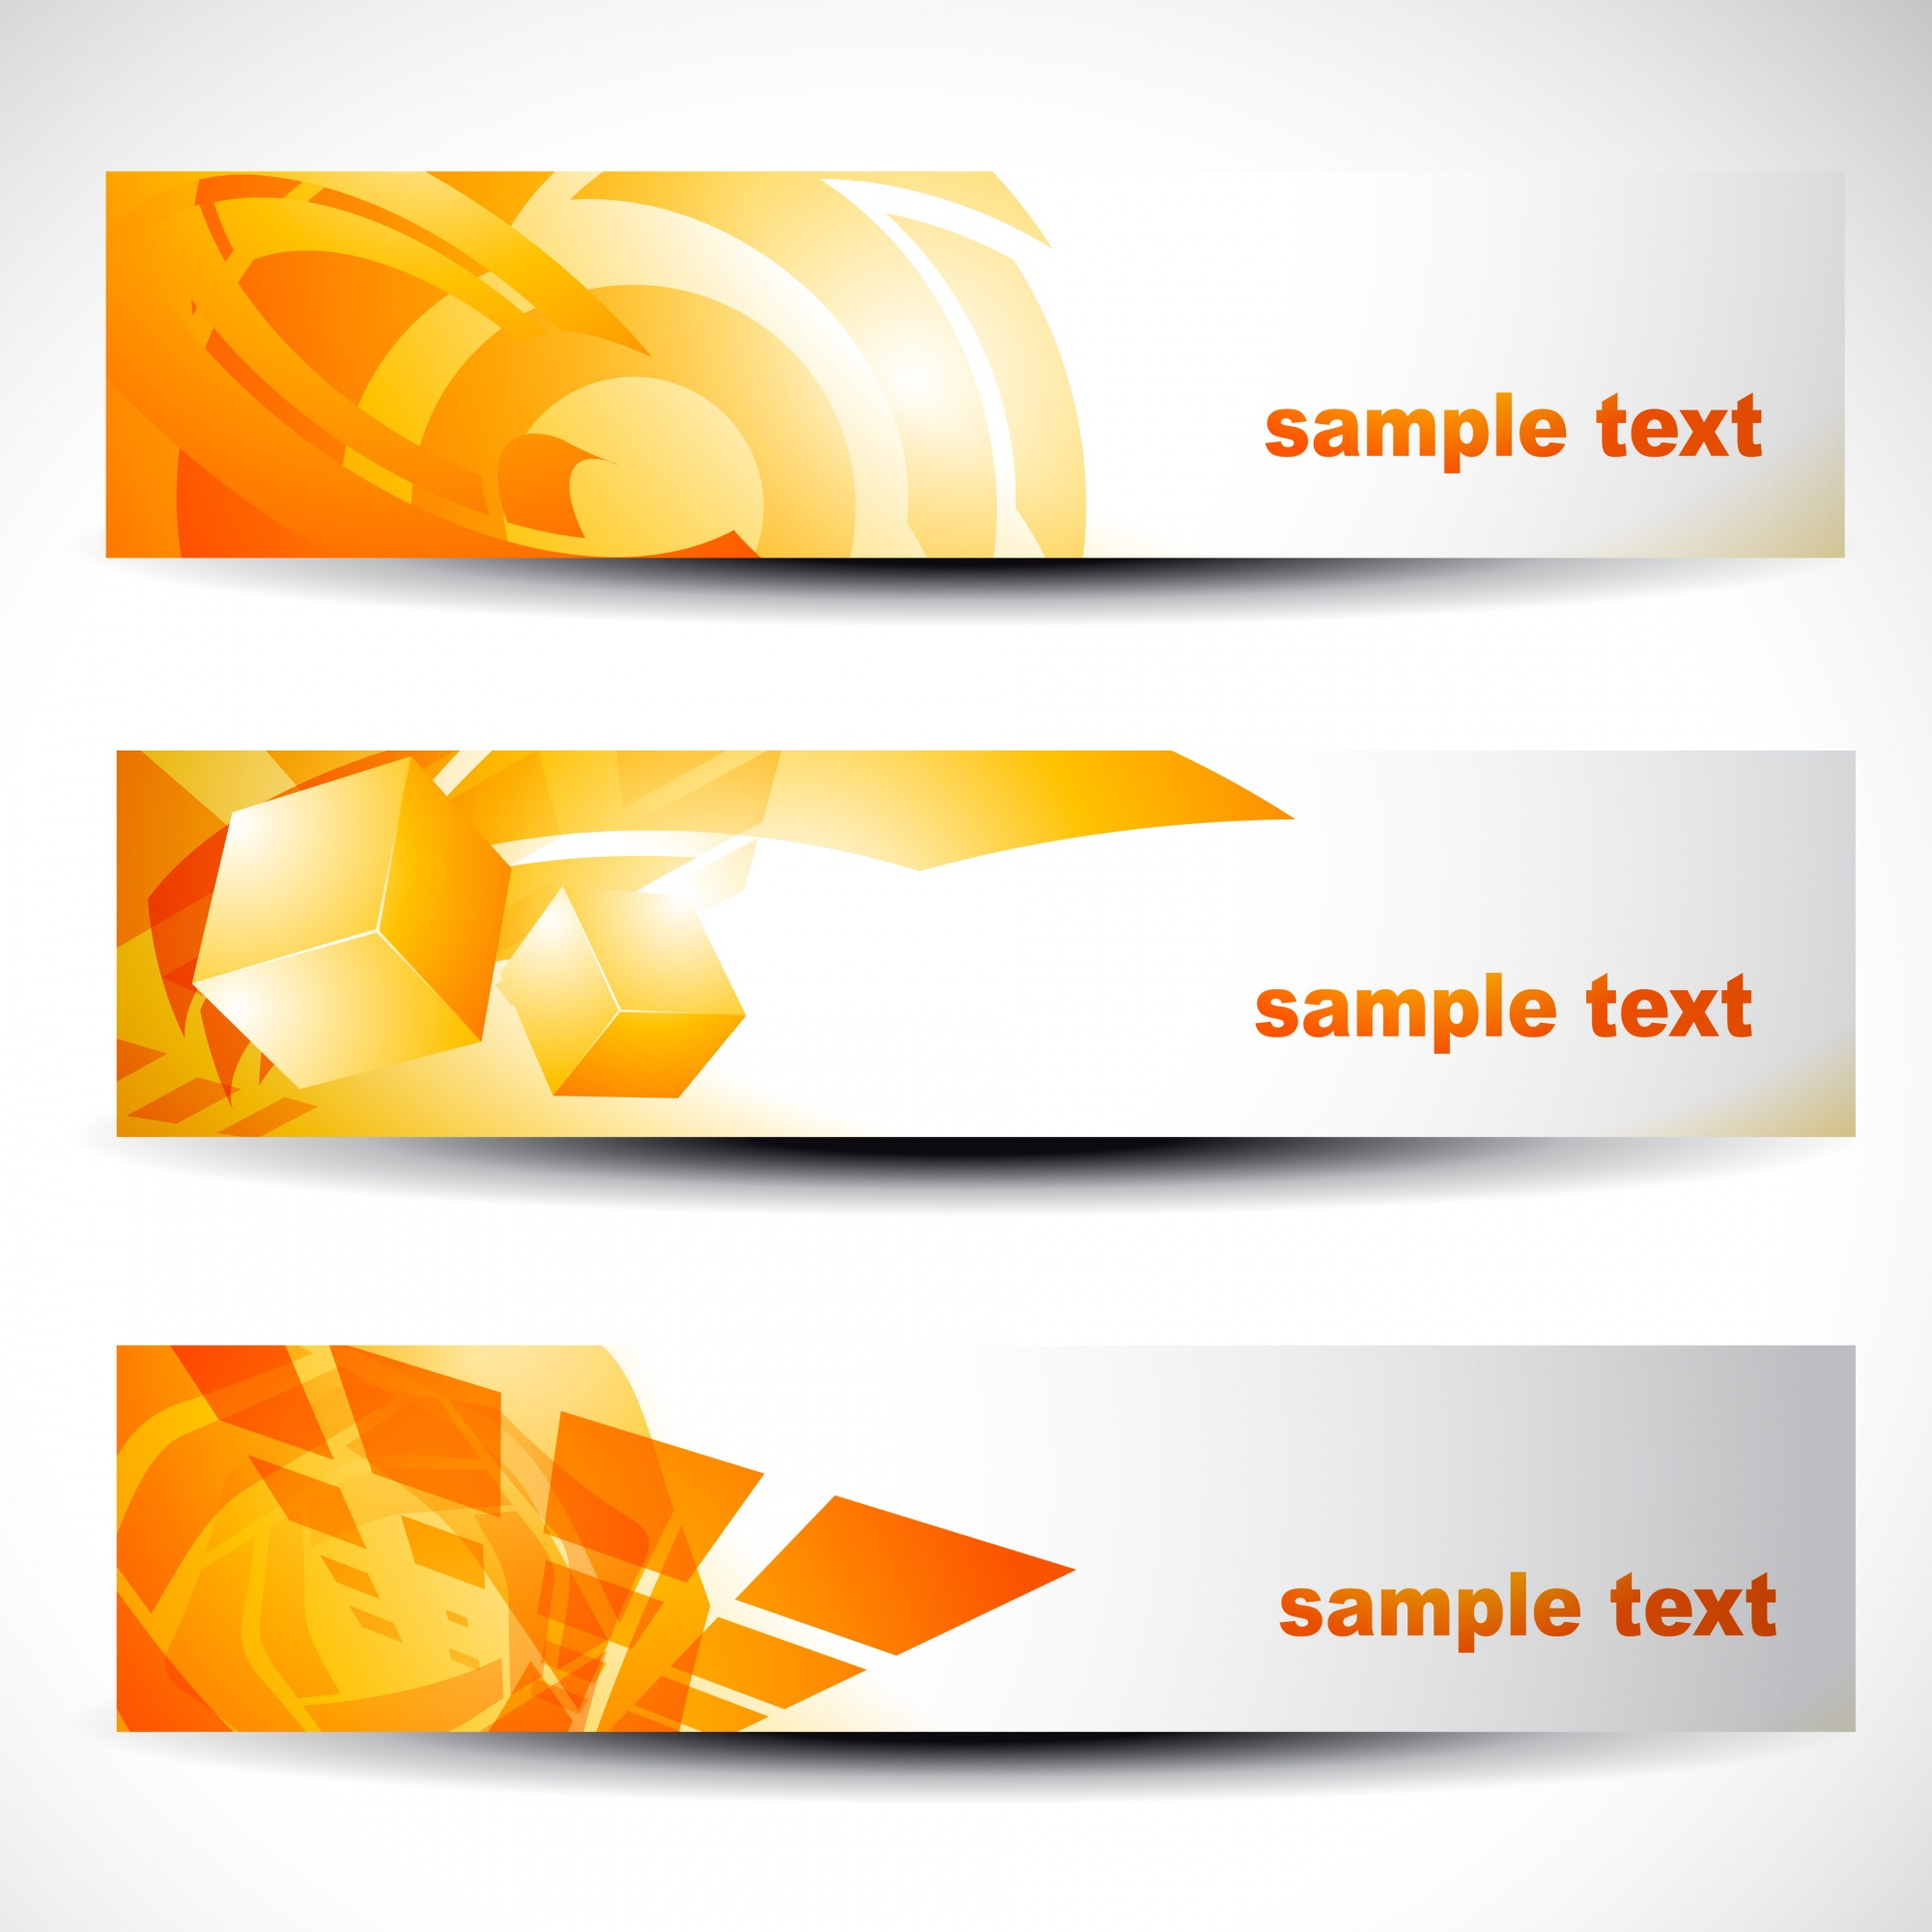 Abstract orange banners